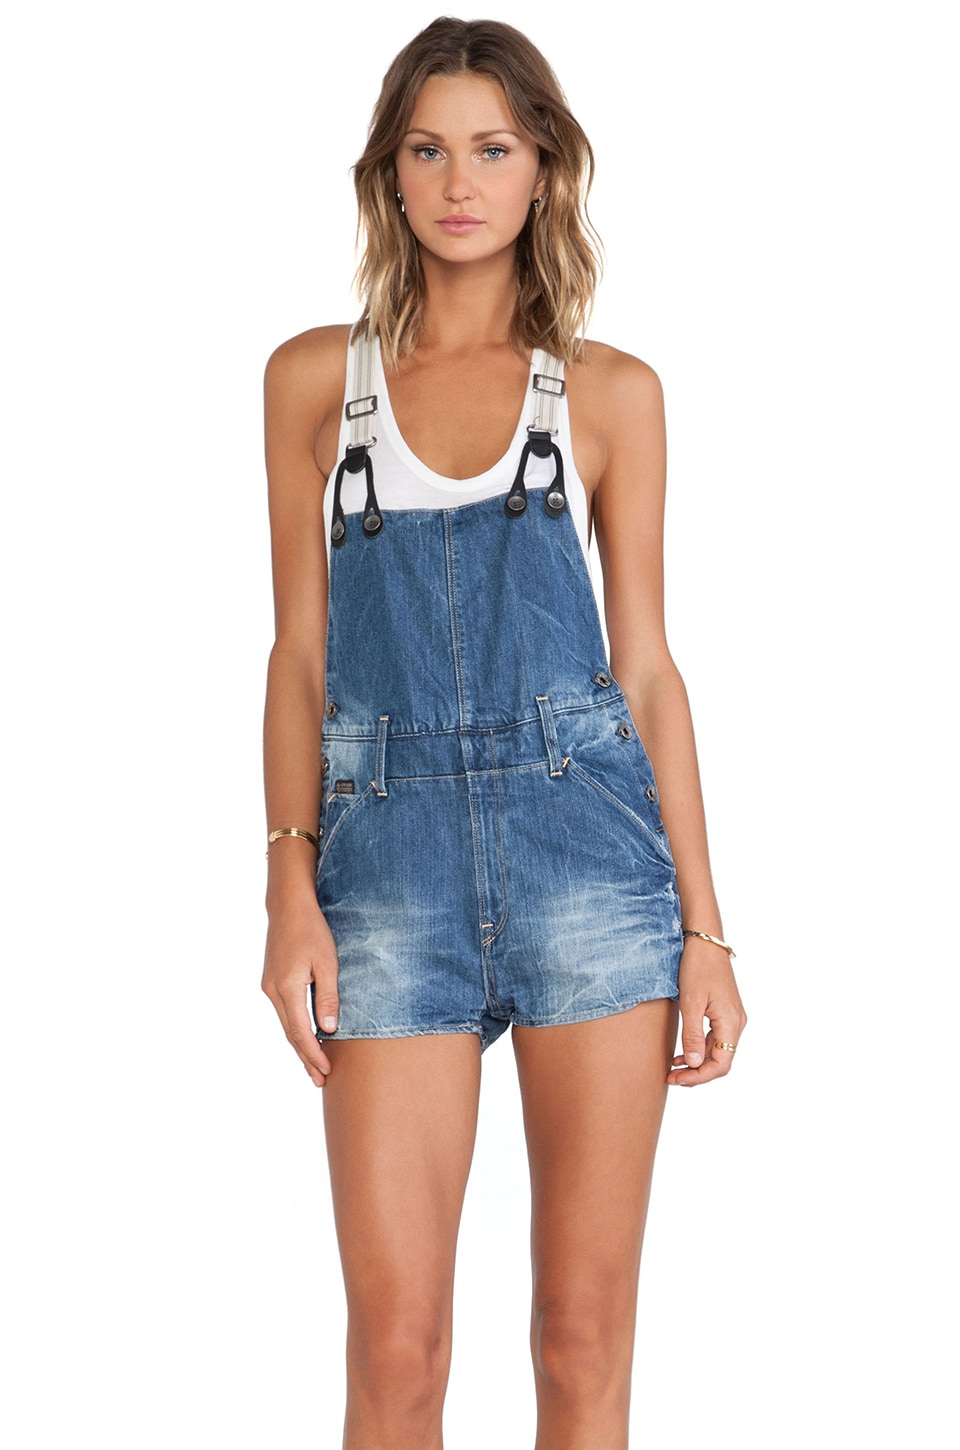 G-Star Salopette Overalls in Waton